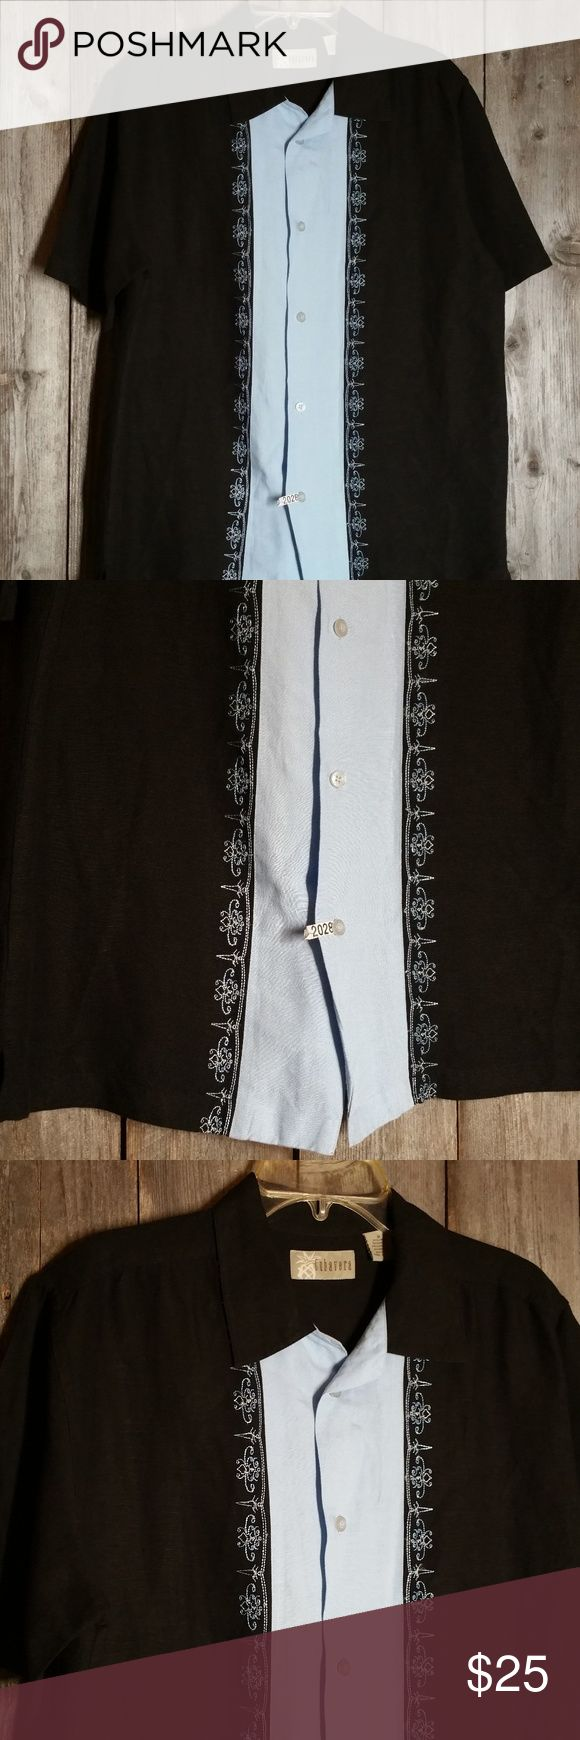 Cubavera Shirt Black Blue Camp Bowling Cuban Cigar Cubavera Shirt M Men's Black Blue Camp Bowling Cuban Retro Cigar Button Front Gently used Linen & rayon Approx chest 46 and from shoulder to hem 28 Cubavera Shirts Casual Button Down Shirts